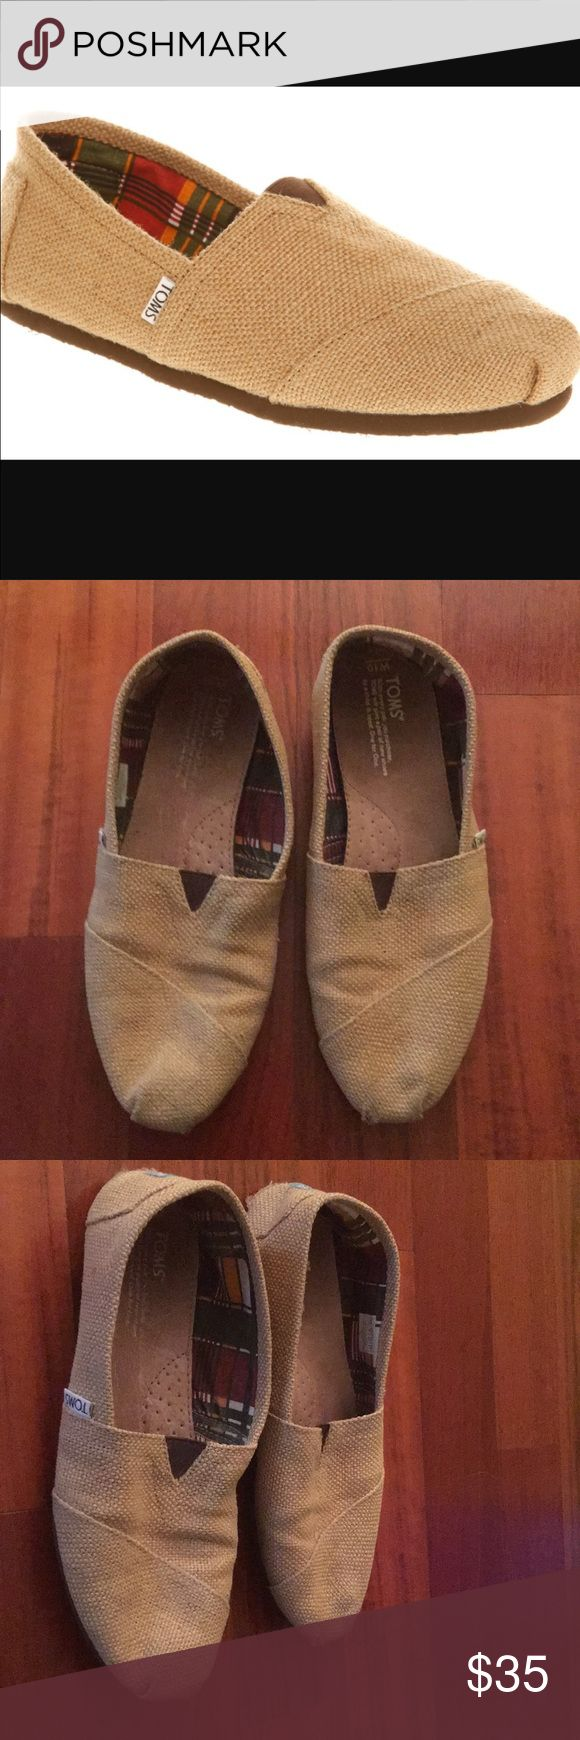 Burlap TOMS size Women's 10 Burlap TOMS Size 10 women's. Looks brand new, now wear. Worn once on airplane flight for comfy shoes, so virtually no wear. Great color goes with most any outfit. I actually wore with all white looked super cute. Comes with dustbag & tags. Toms Shoes Flats & Loafers